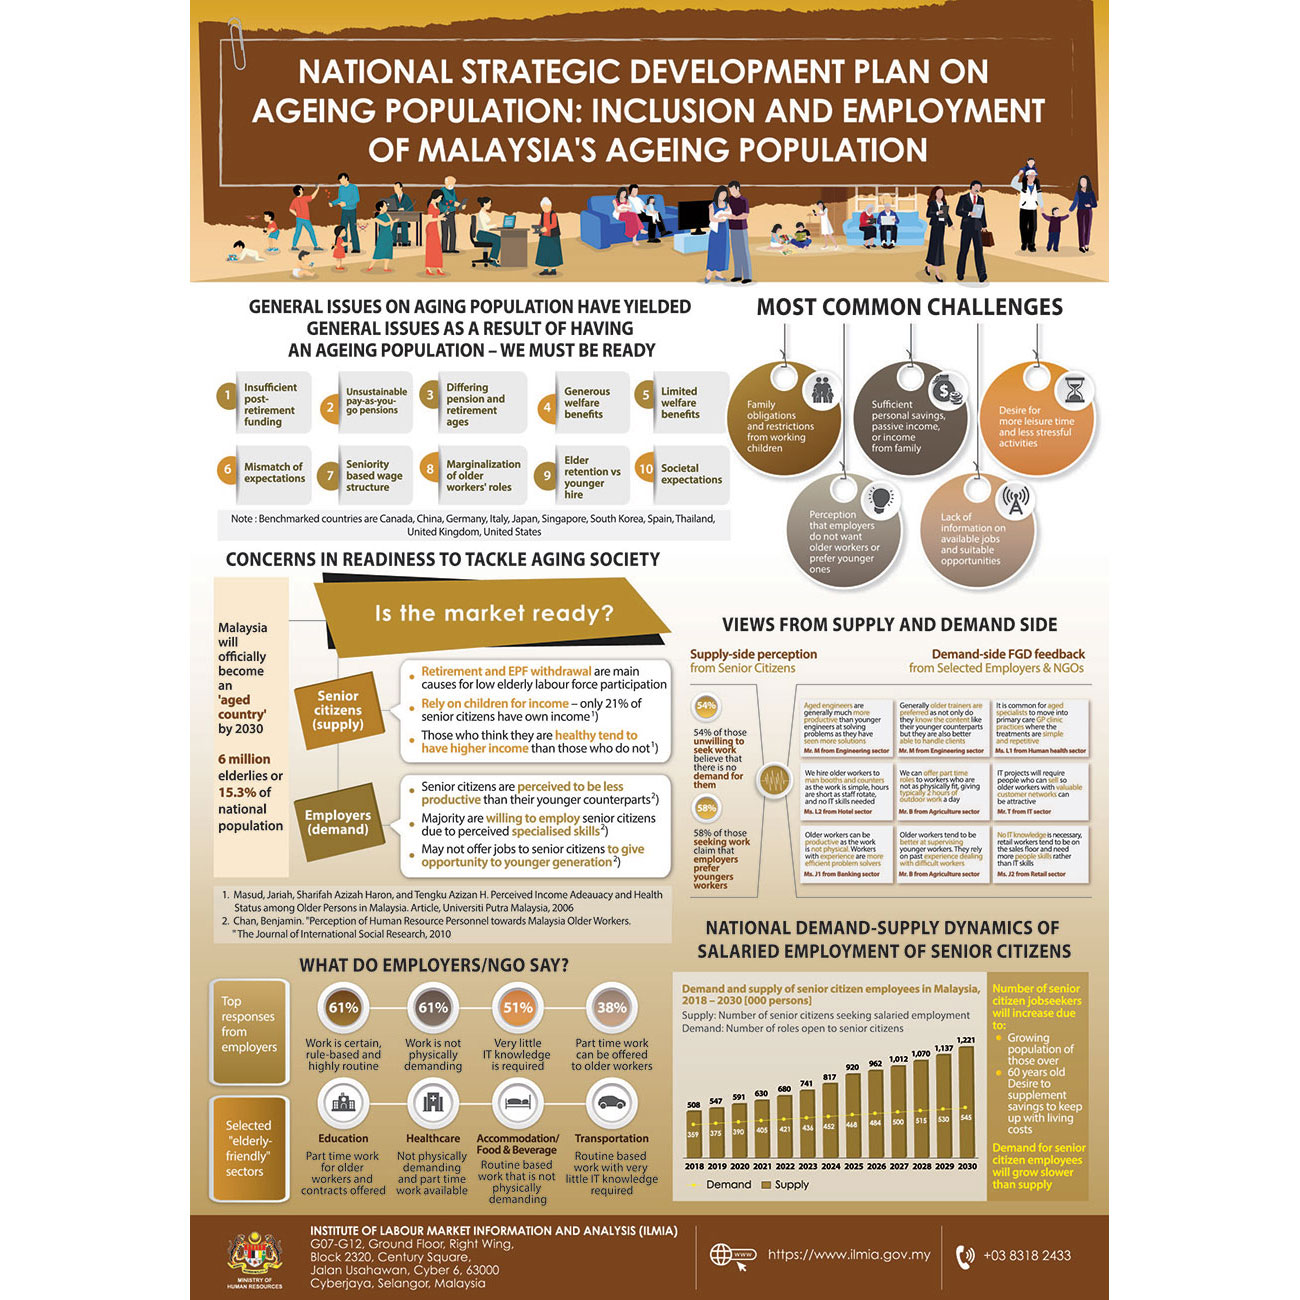 FINAL 08 A1 National Strategic Development Plant On Ageing Population Inclusion And Employment Of Malaysia Ageing Population 01